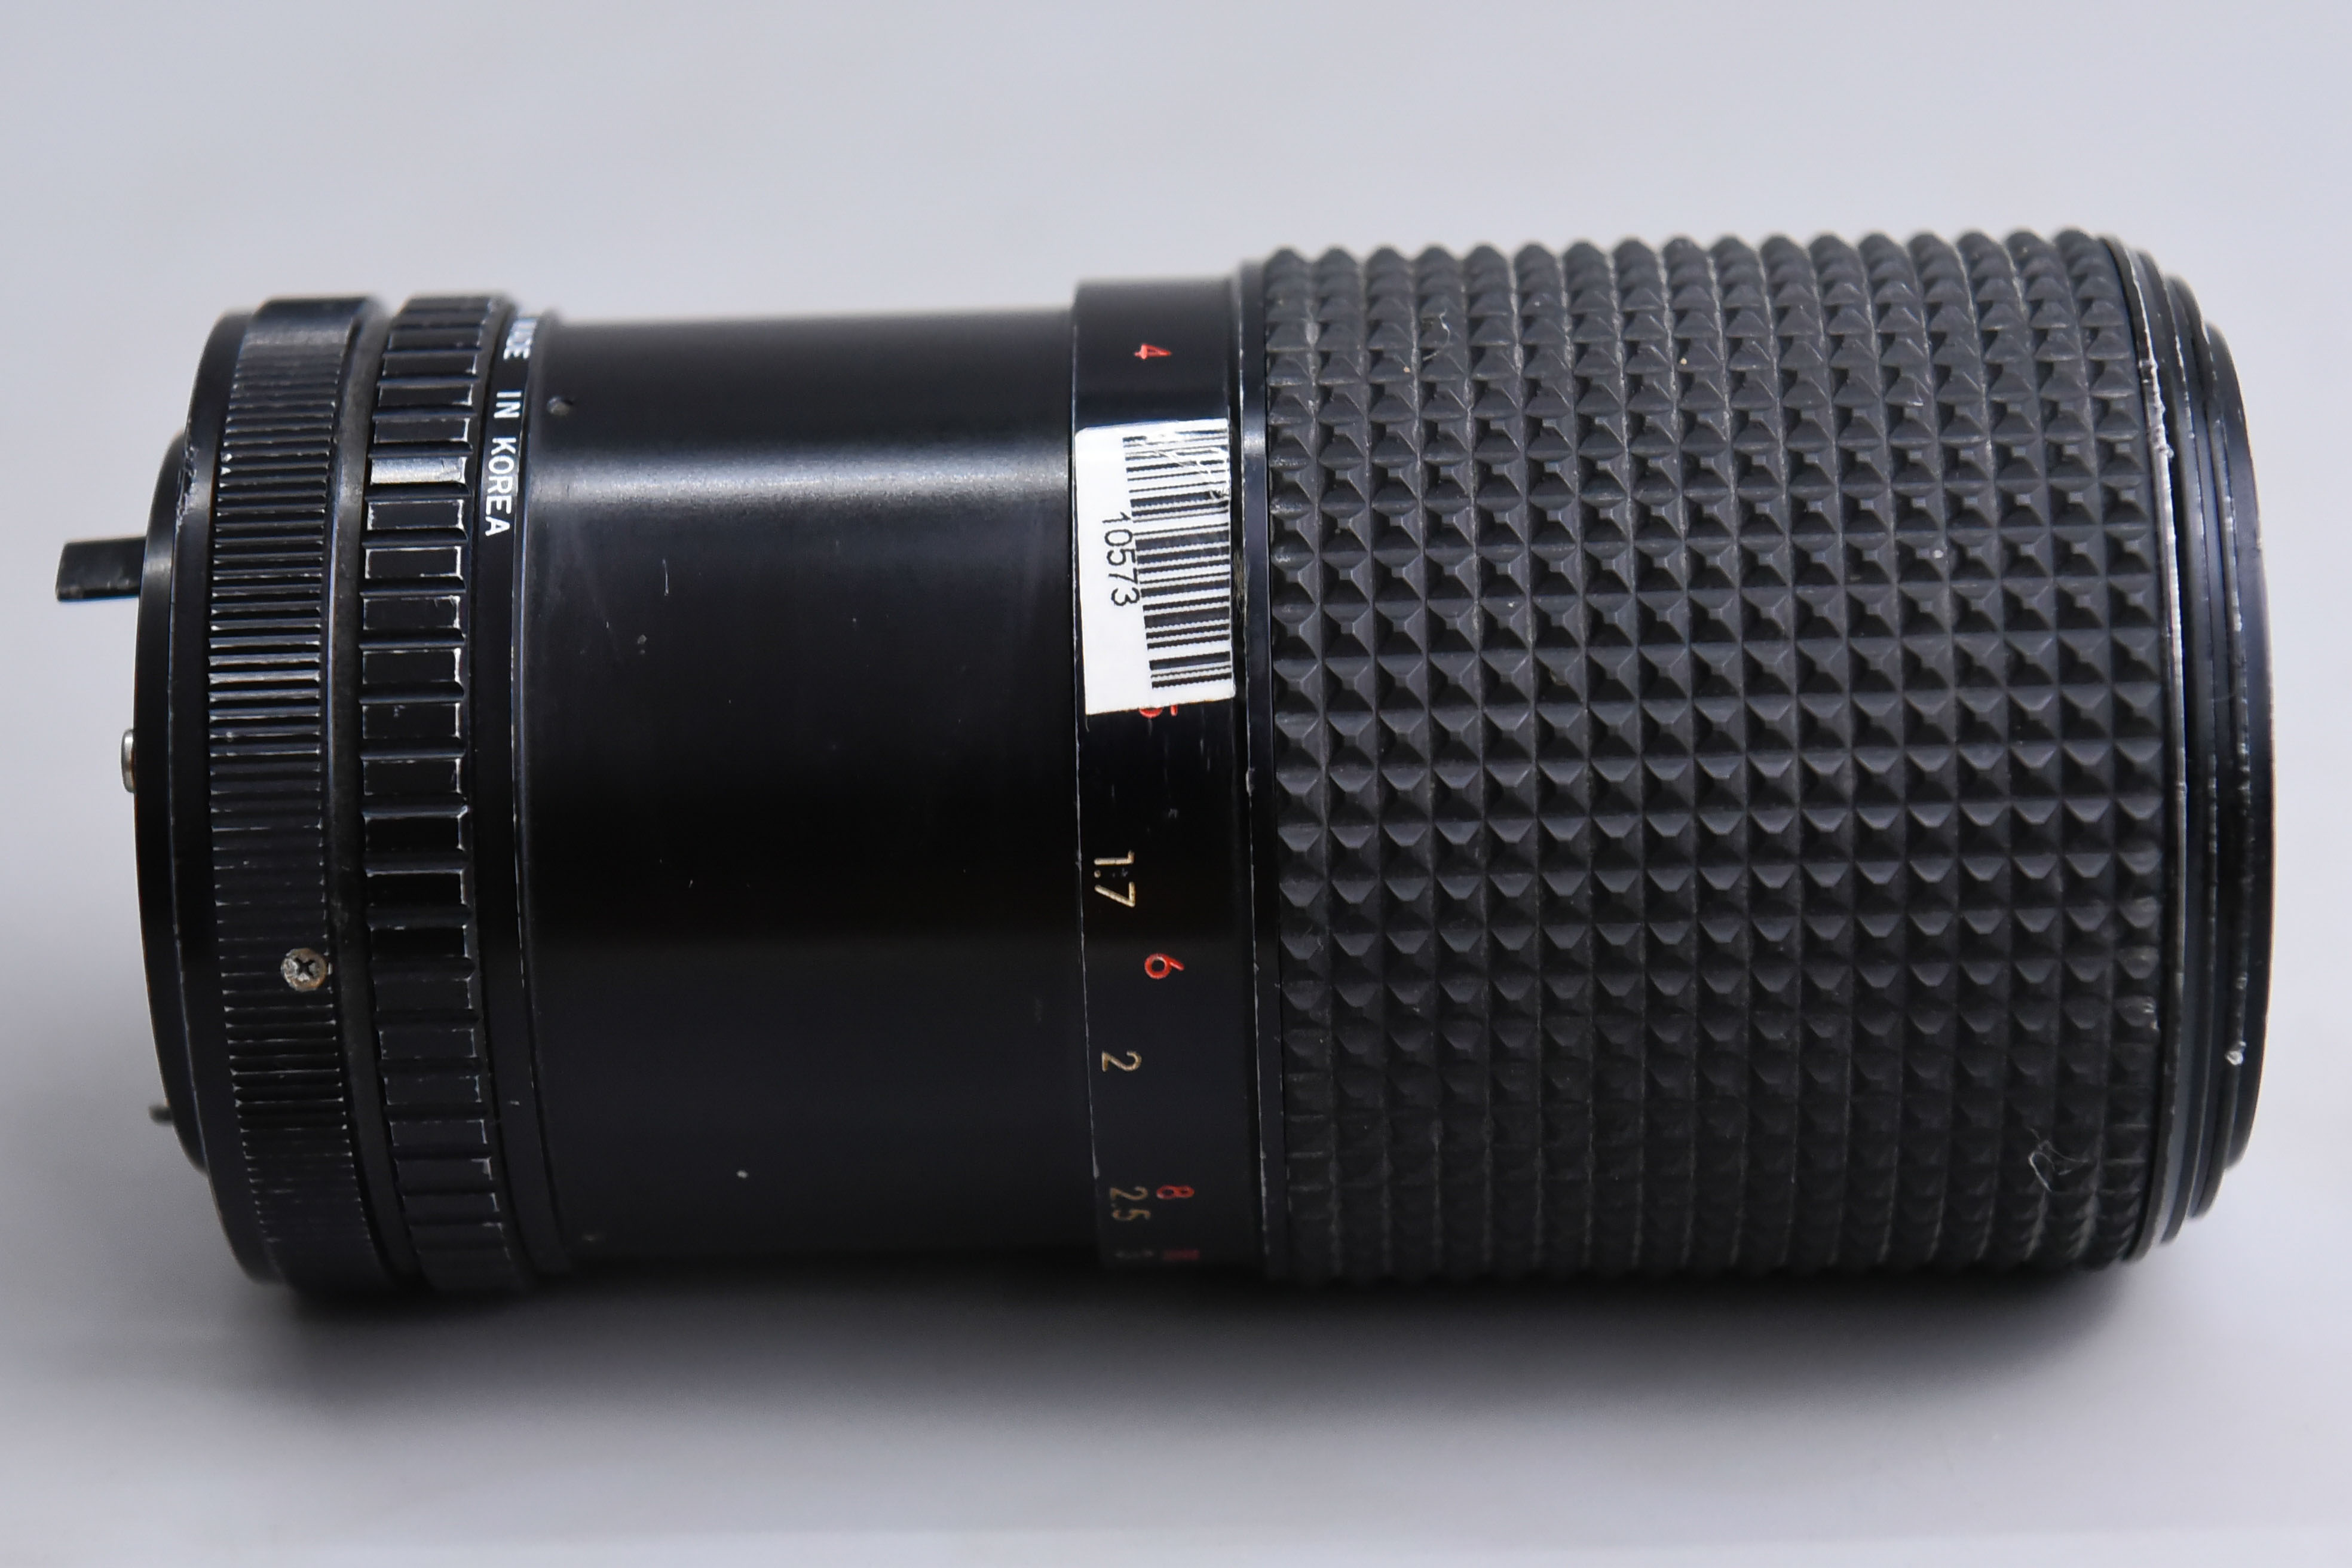 samyang-mc-70-210mm-f4-5-6-mf-canon-fd-samyang-70-210-4-5-6-10573